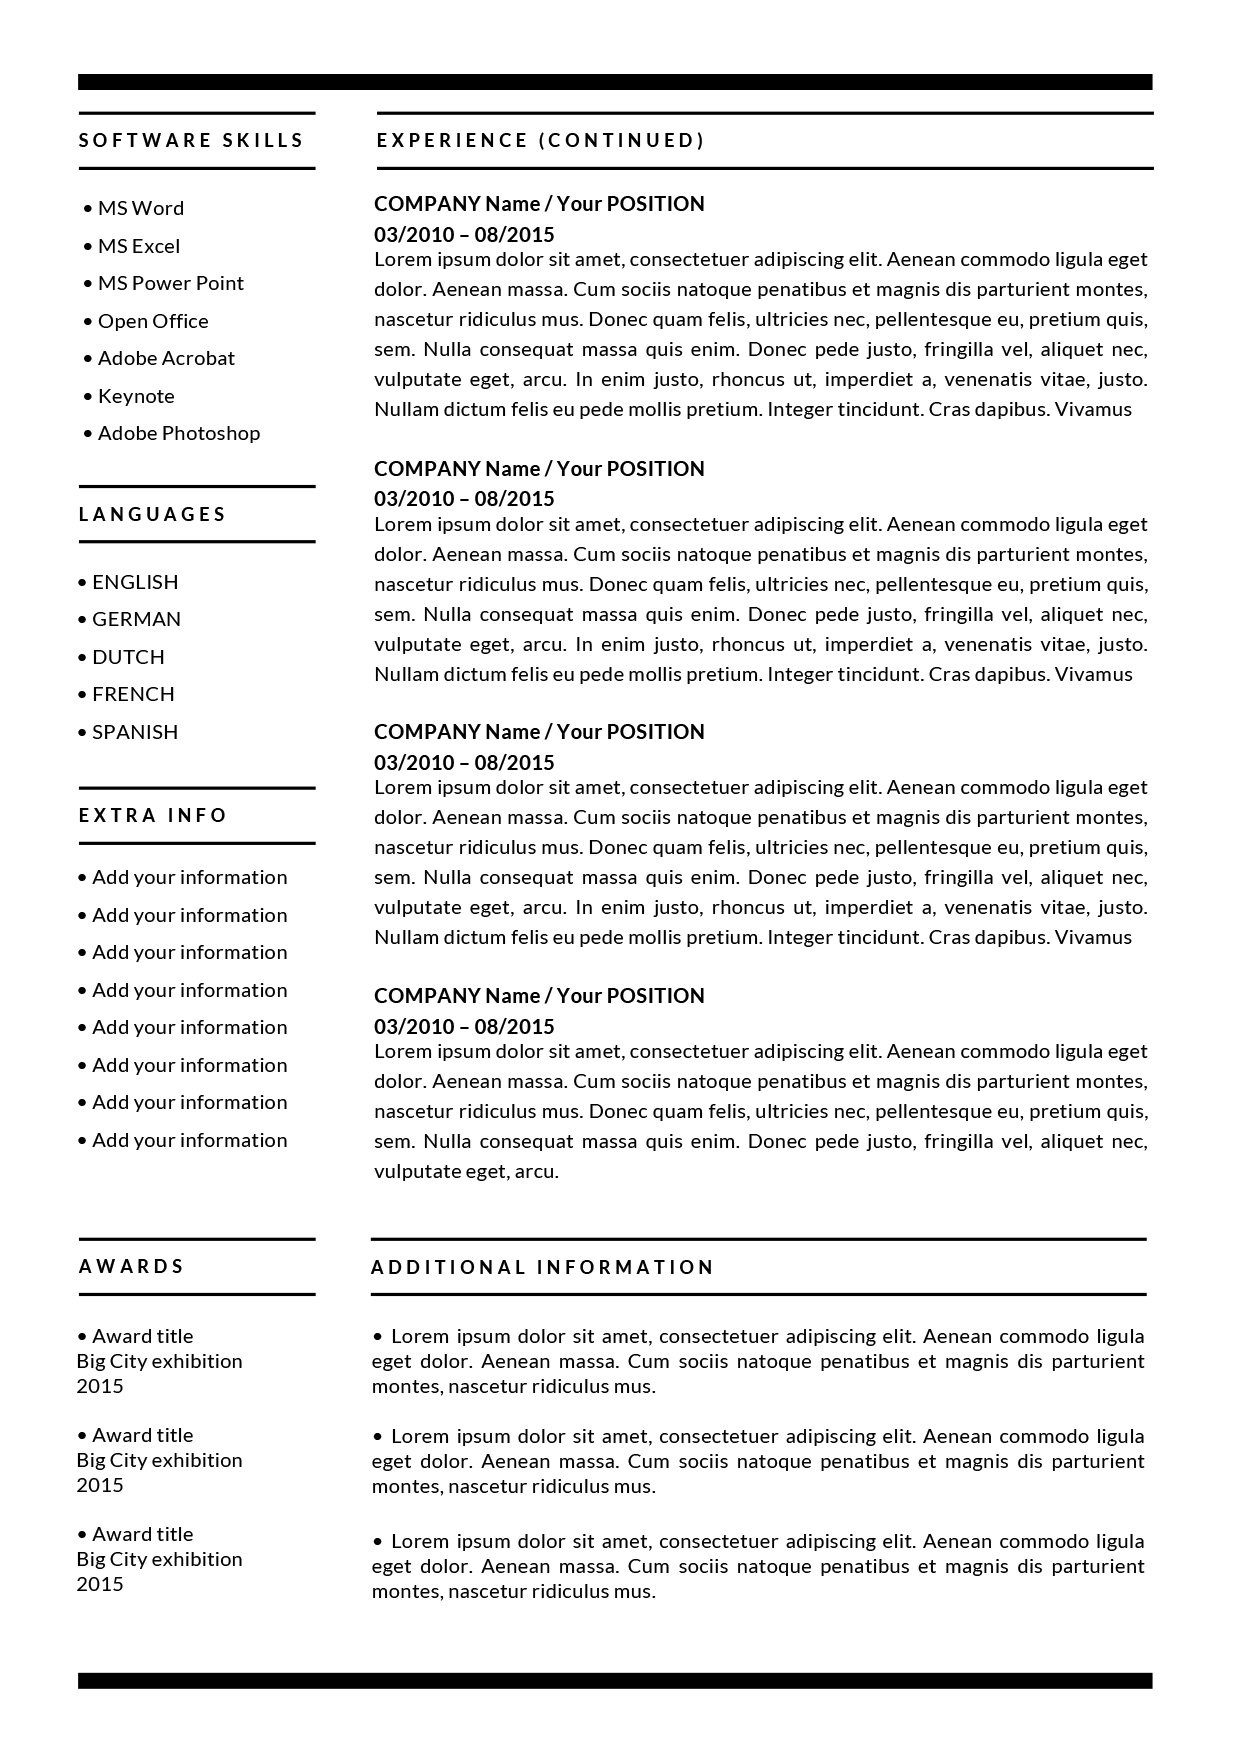 the barbara resume additional information on auditor summary good job references federal Resume Additional Information On Resume